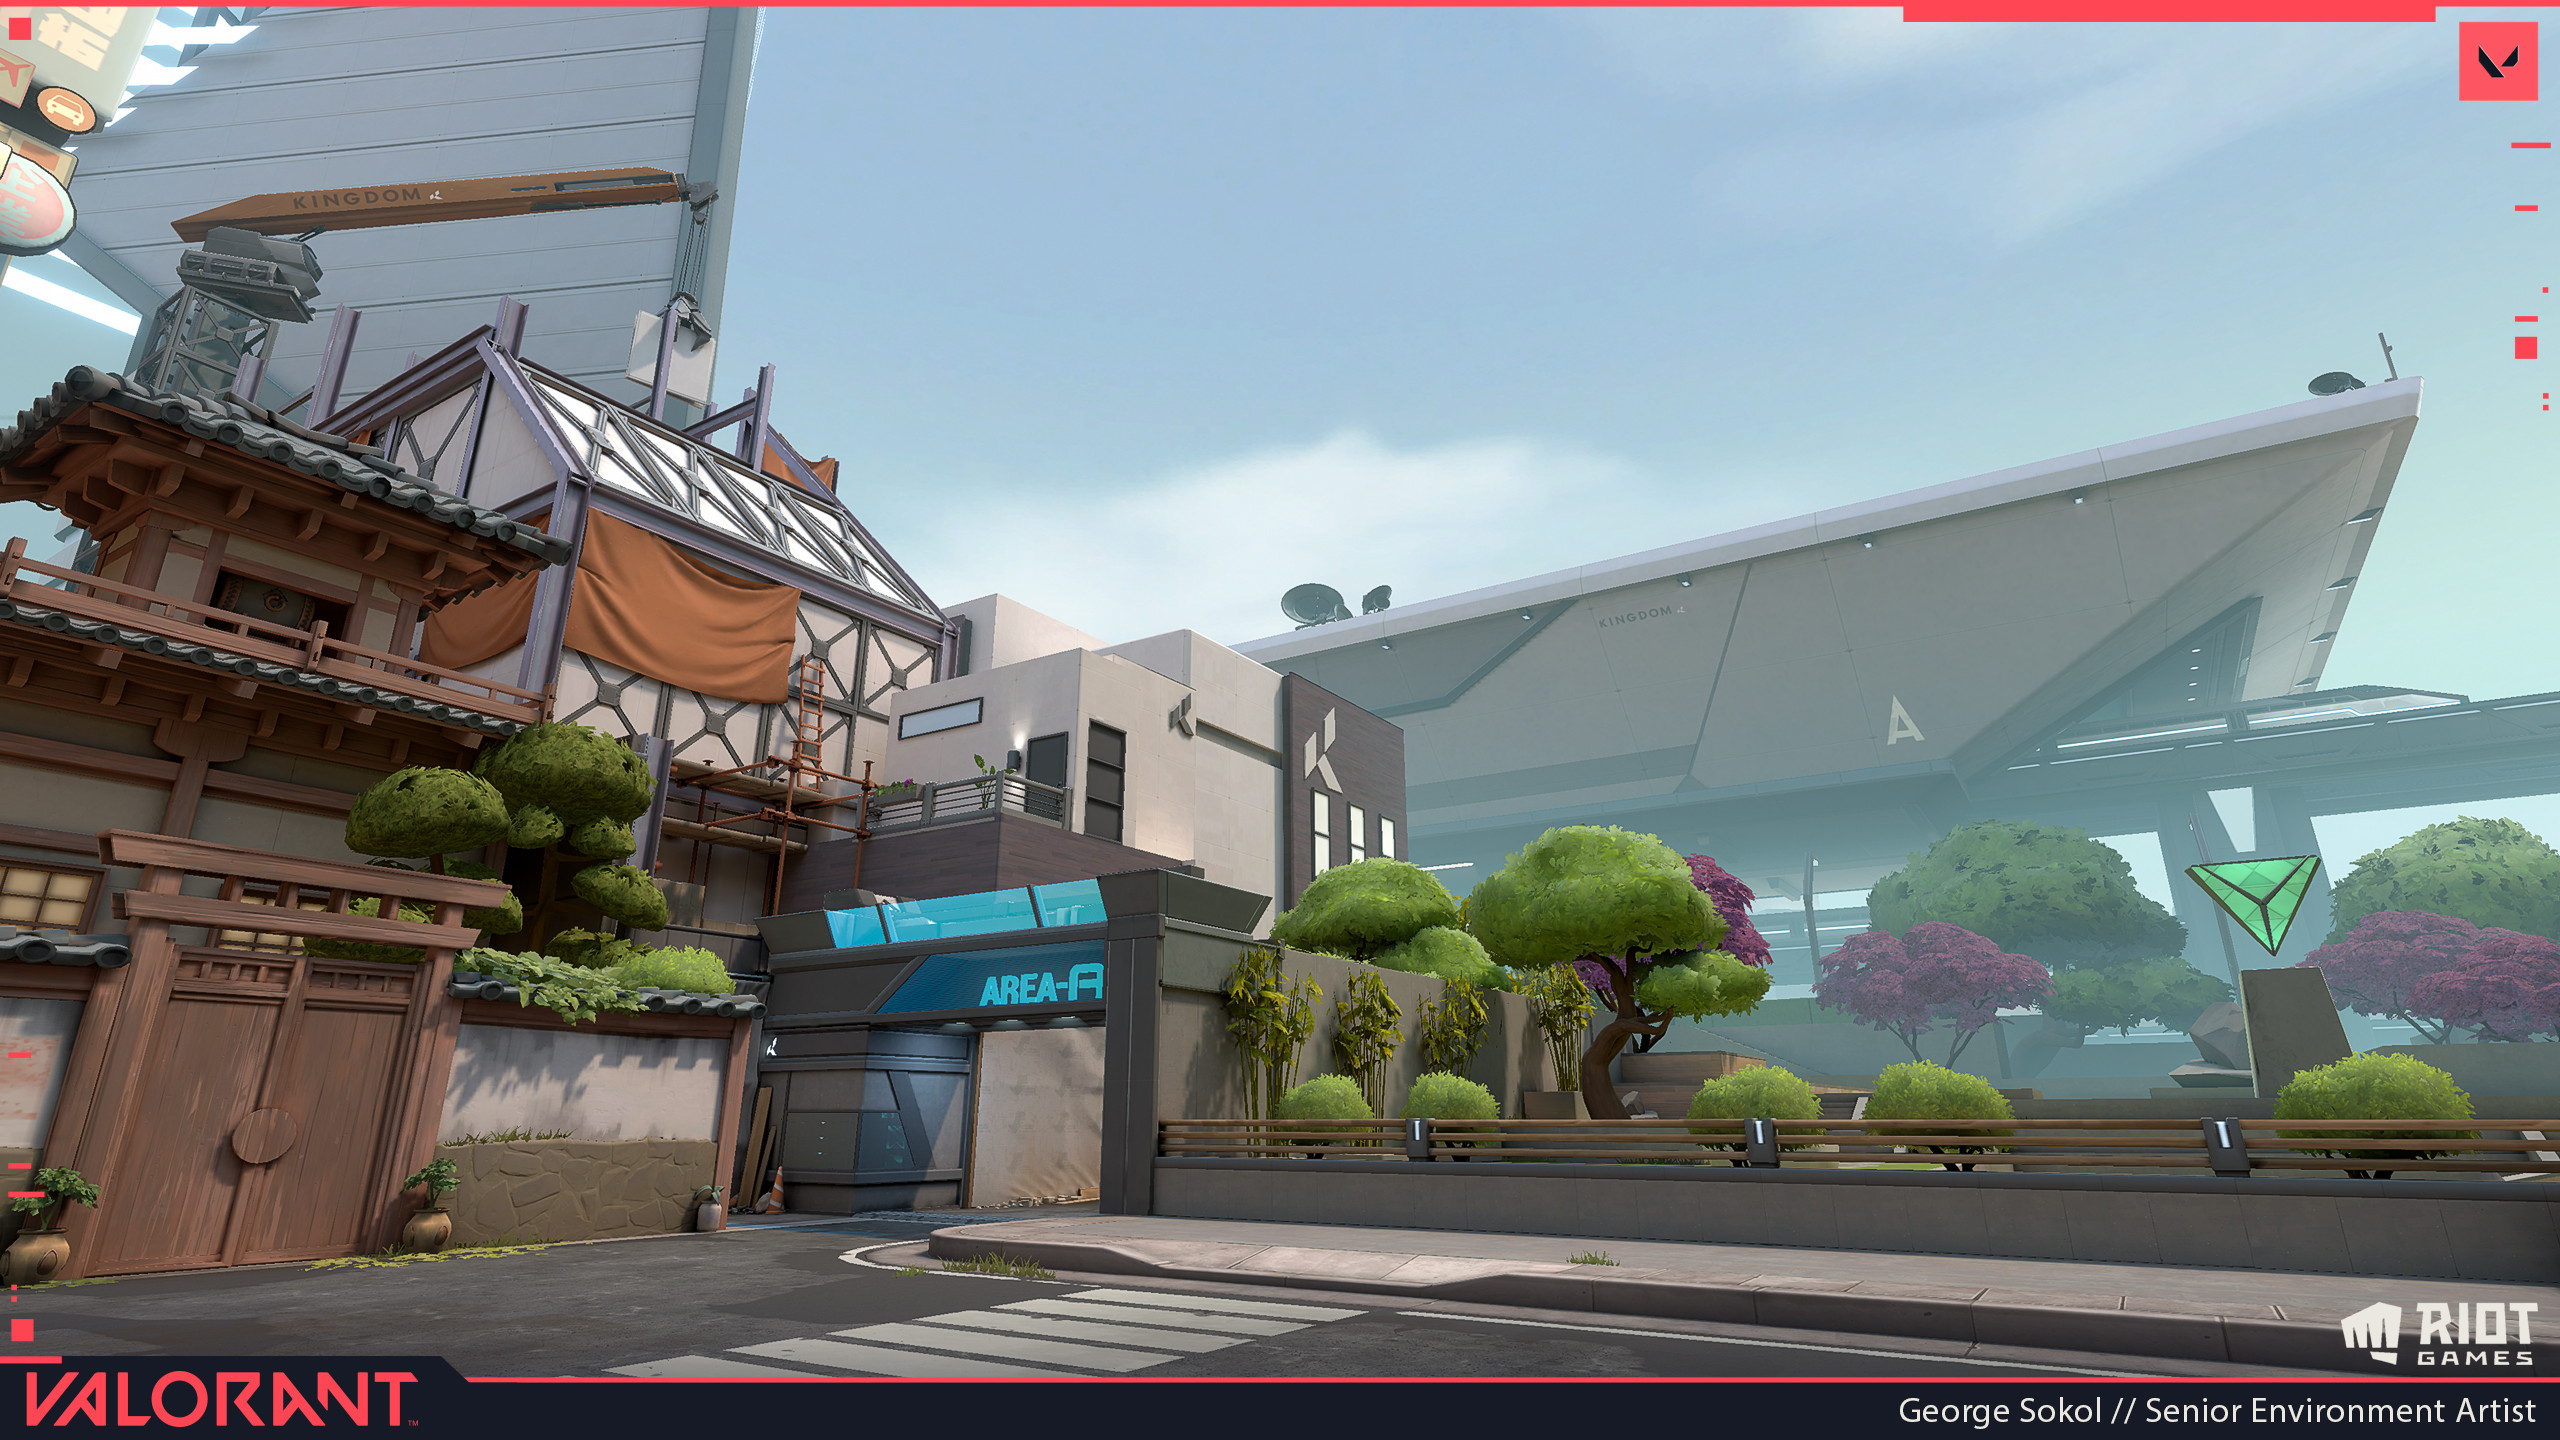 Attacker Spawn - I worked on the construction building and the large train station in the vista